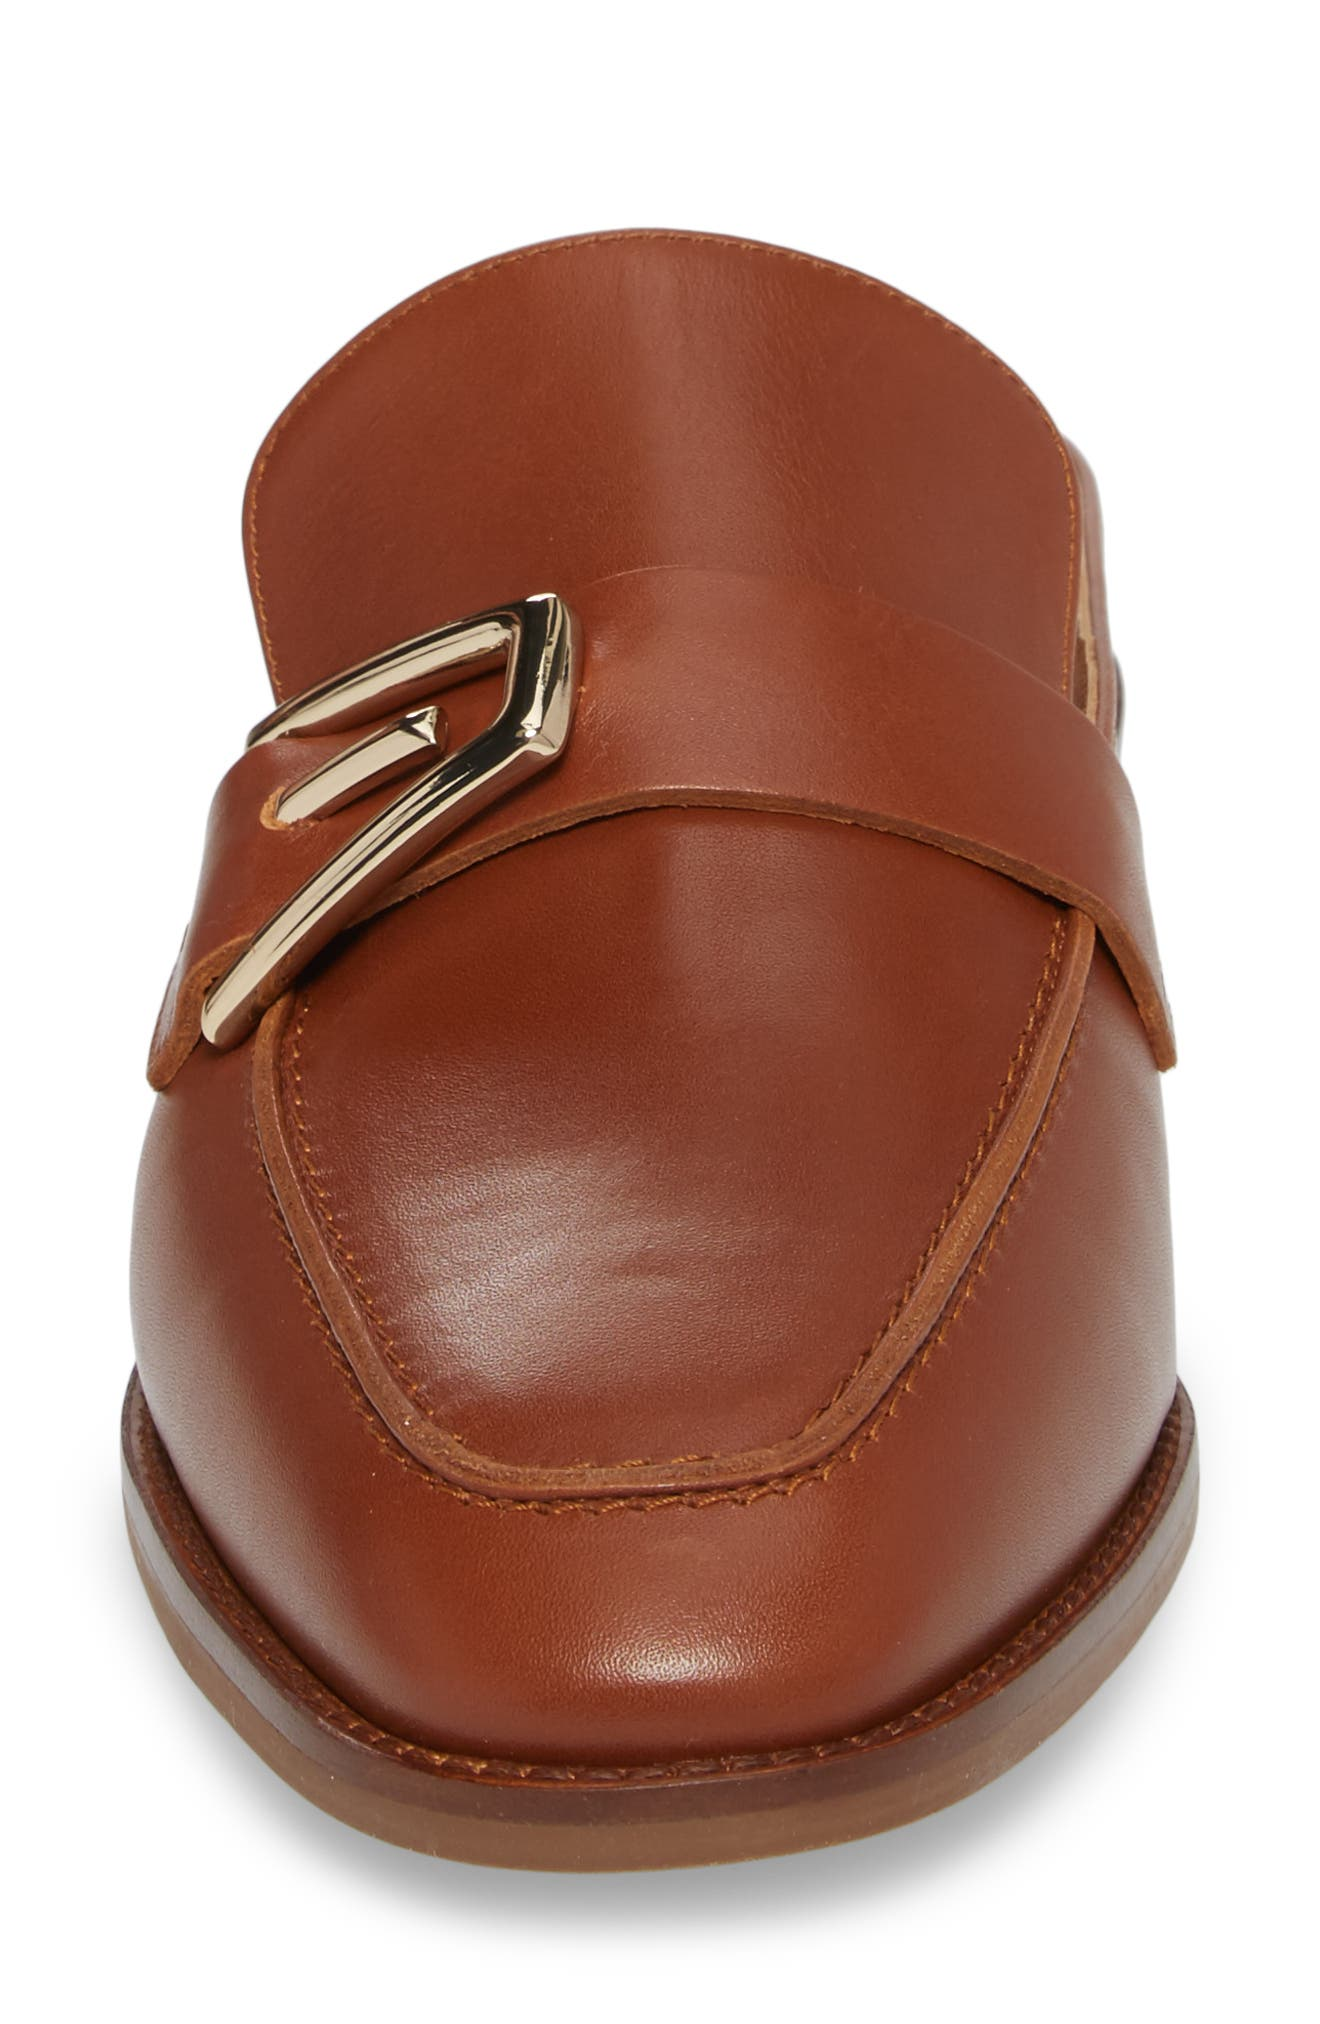 Tosca Loafer Mule,                             Alternate thumbnail 7, color,